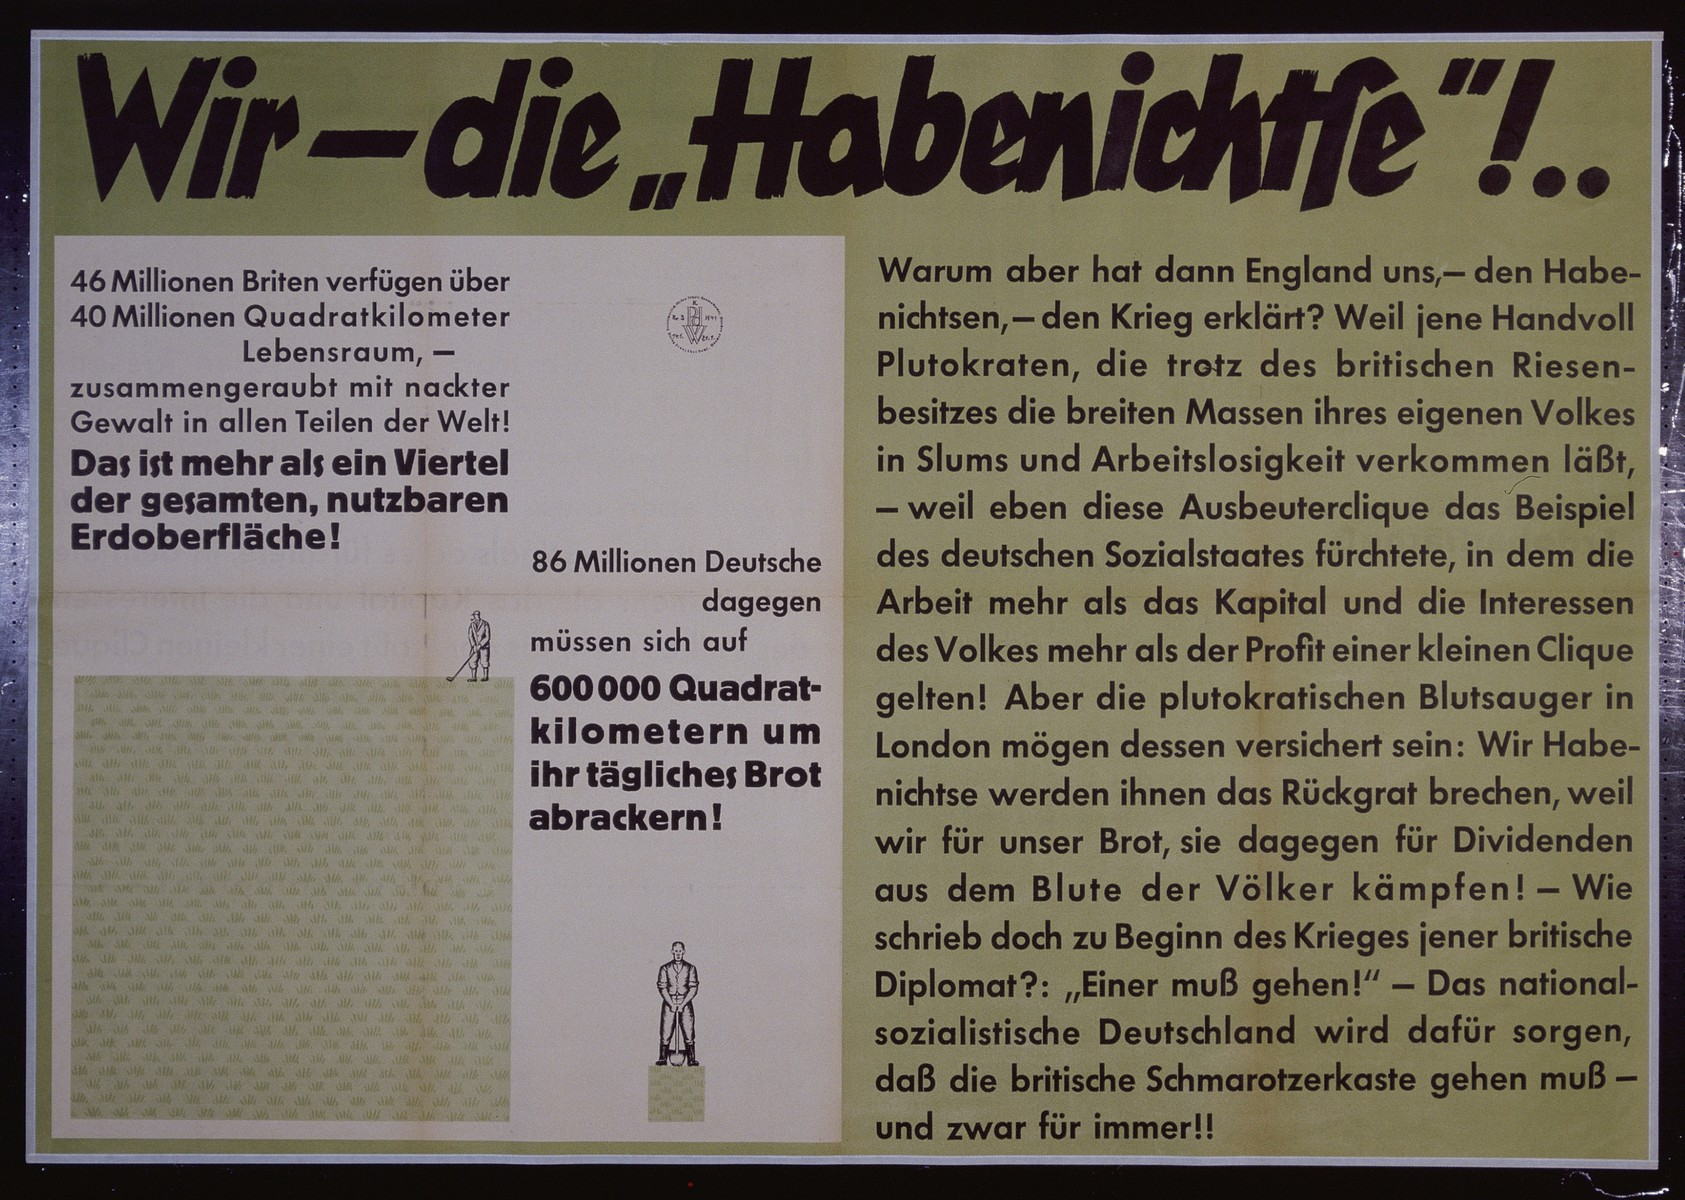 """Nazi propaganda poster entitled, """"Wir - die 'Habenichtse'!"""" issued by the """"Parole der Woche,"""" a wall newspaper (Wandzeitung) published by the National Socialist Party propaganda office in Munich."""